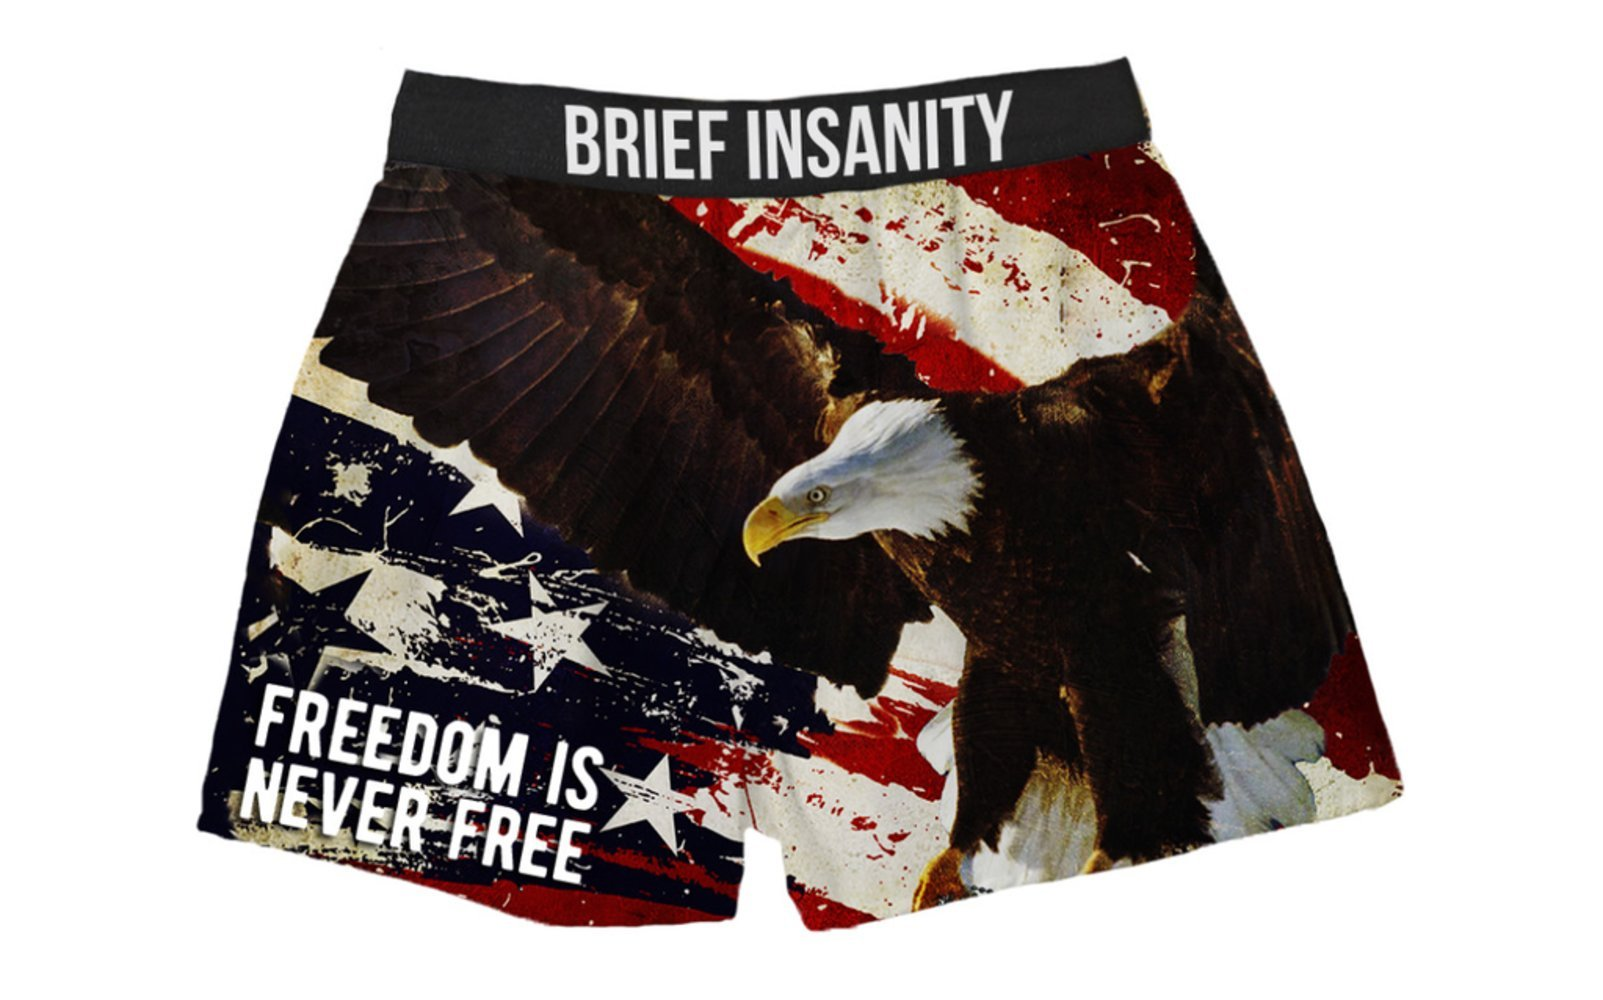 Brief Insanity Freedom is Never Free Patriotic Boxer Shorts Gifts for Men